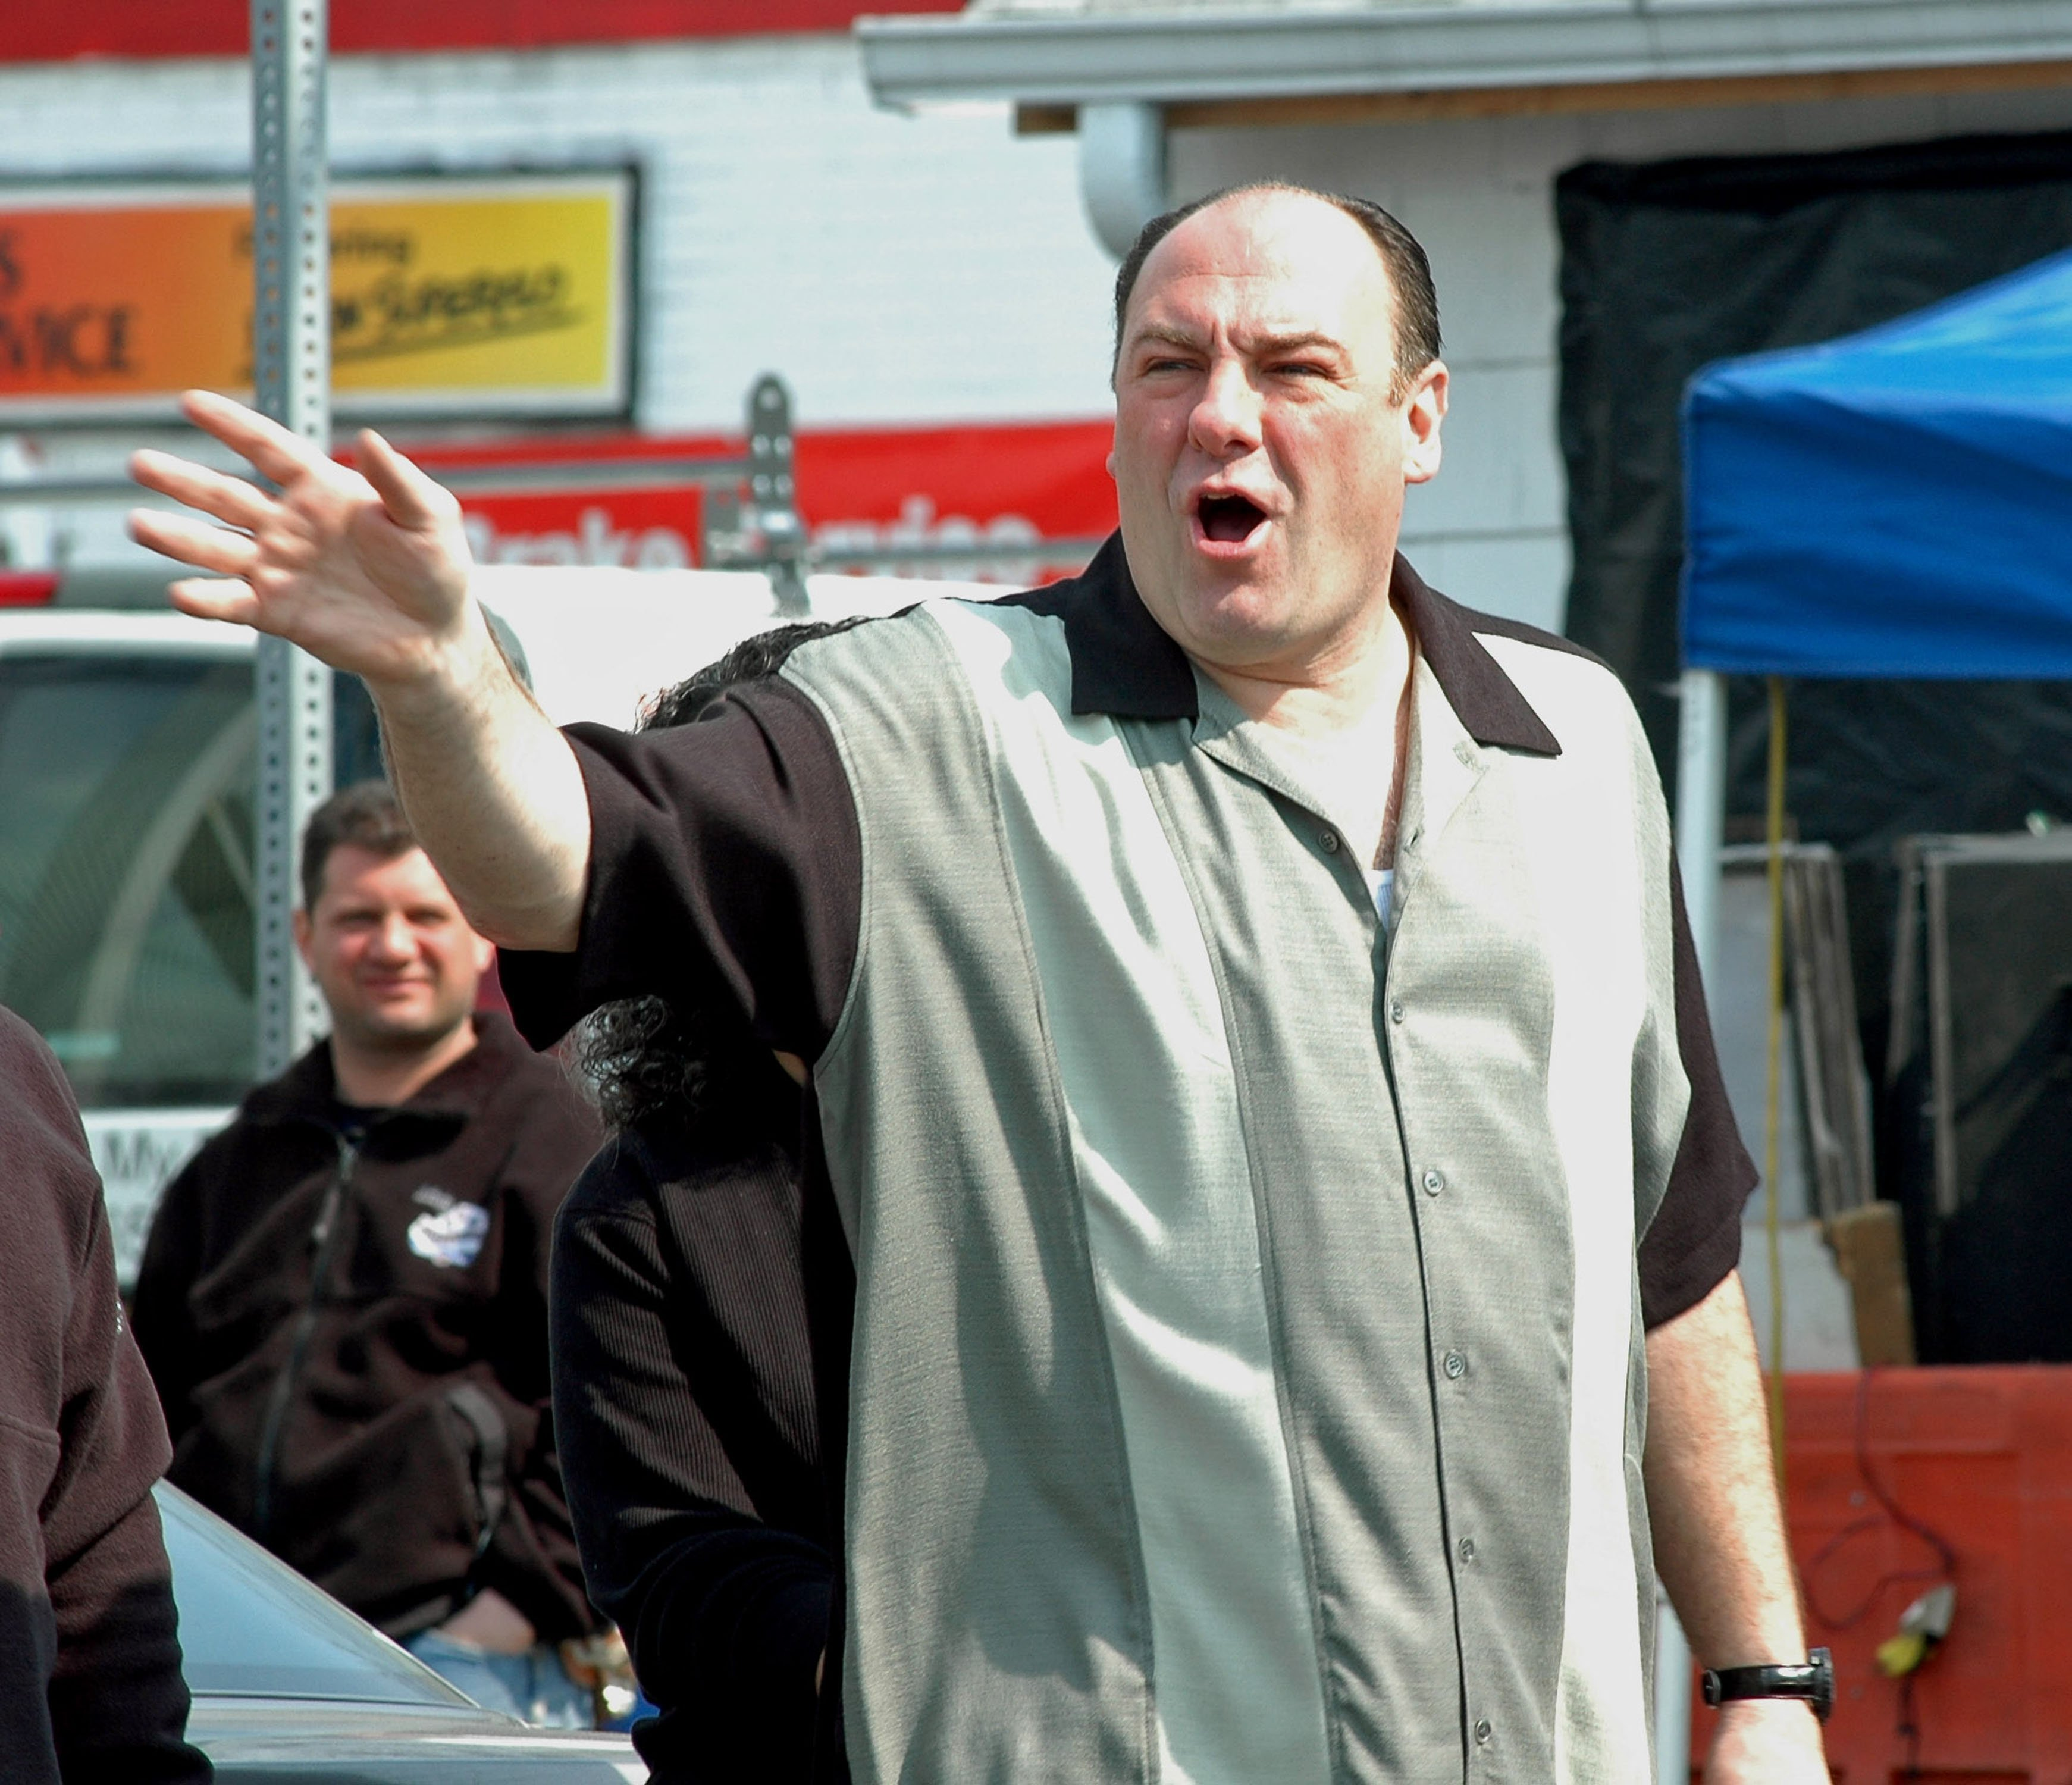 """James Gandolfini as Tony Soprano in the HBO series, """"The Sopranos"""" which debuted in 1999.   Photo: Getty Images."""